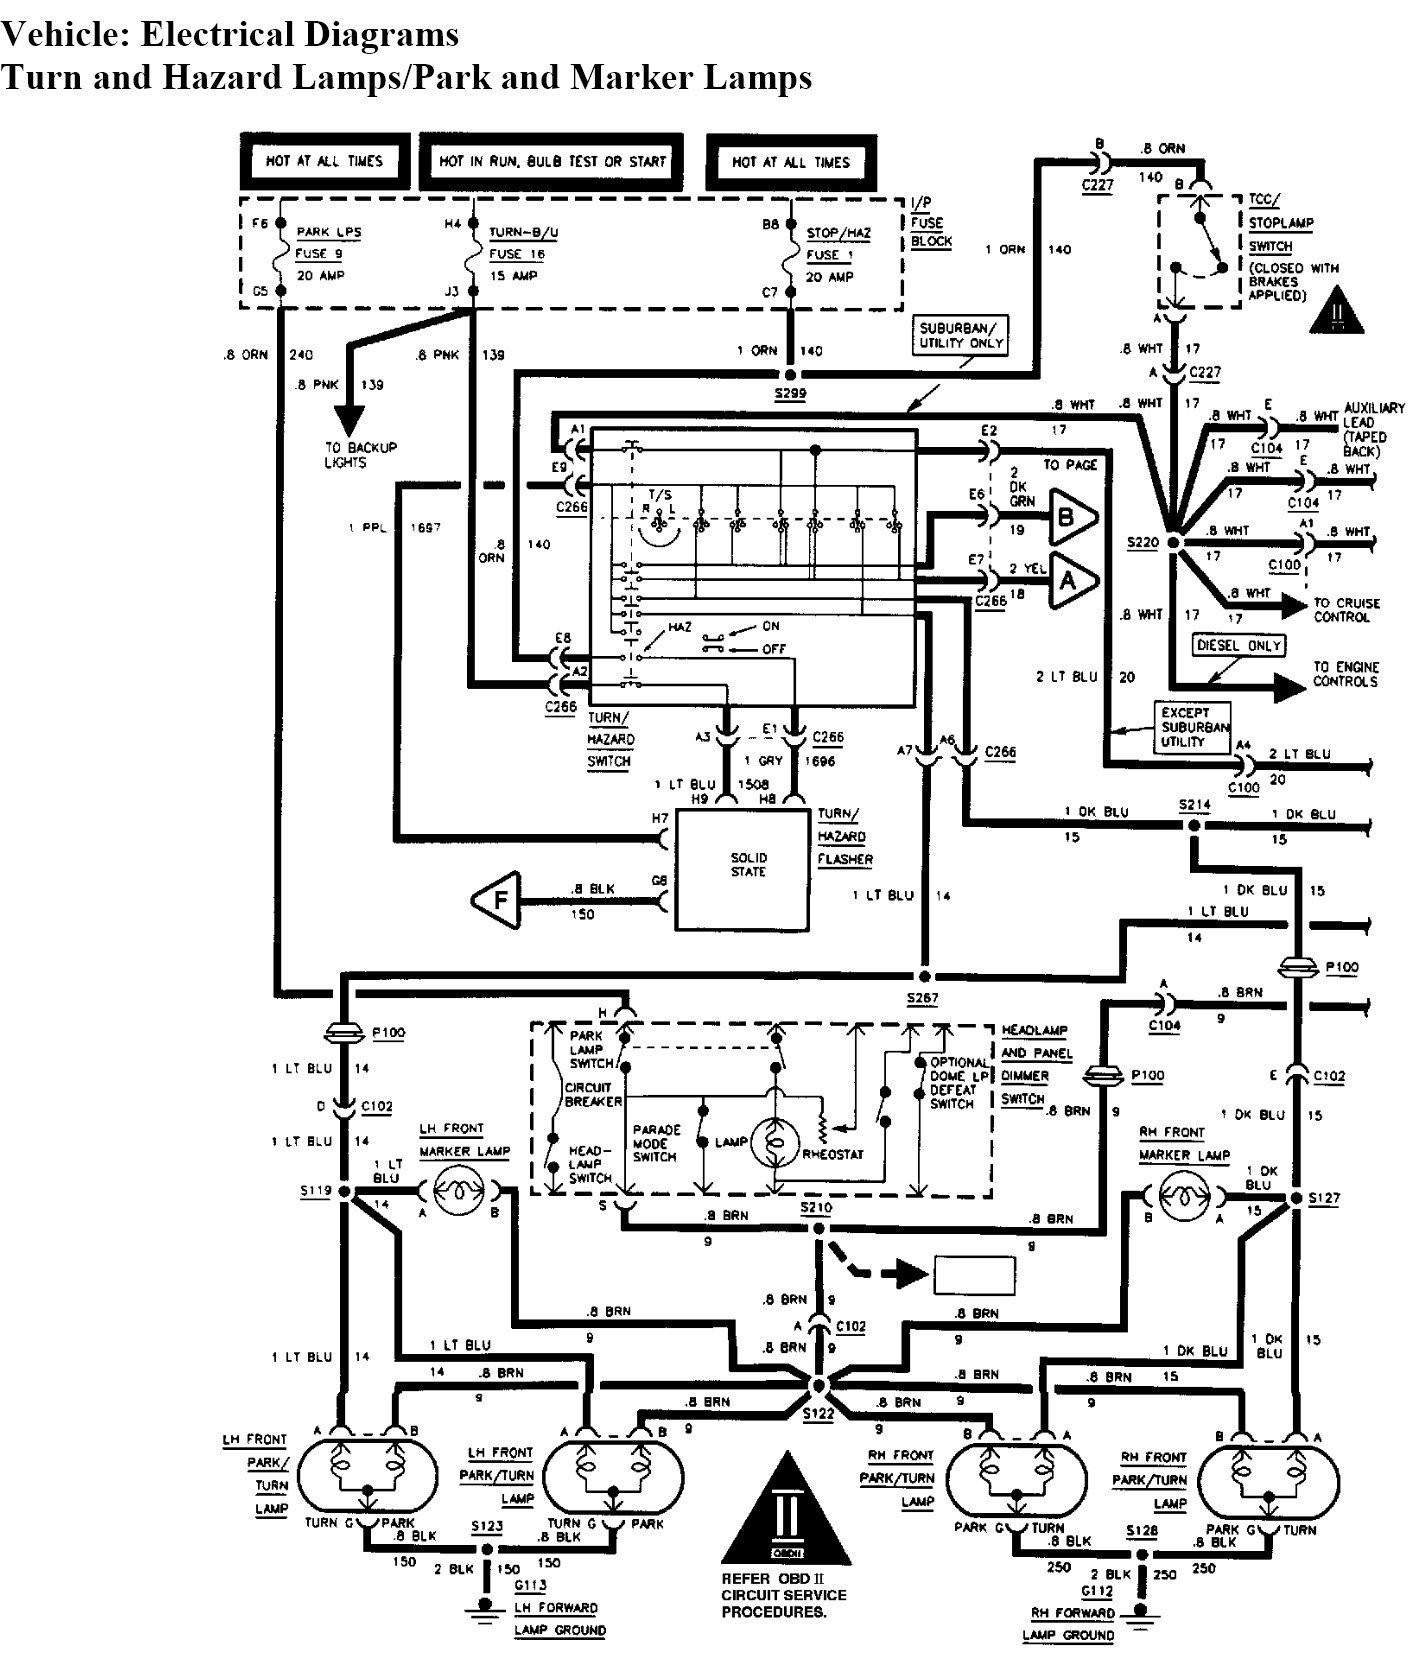 hight resolution of 1999 chevy suburban 4wd wiring diagram electrical wiring diagrams rh wiringforall today 1999 suburban ac diagram